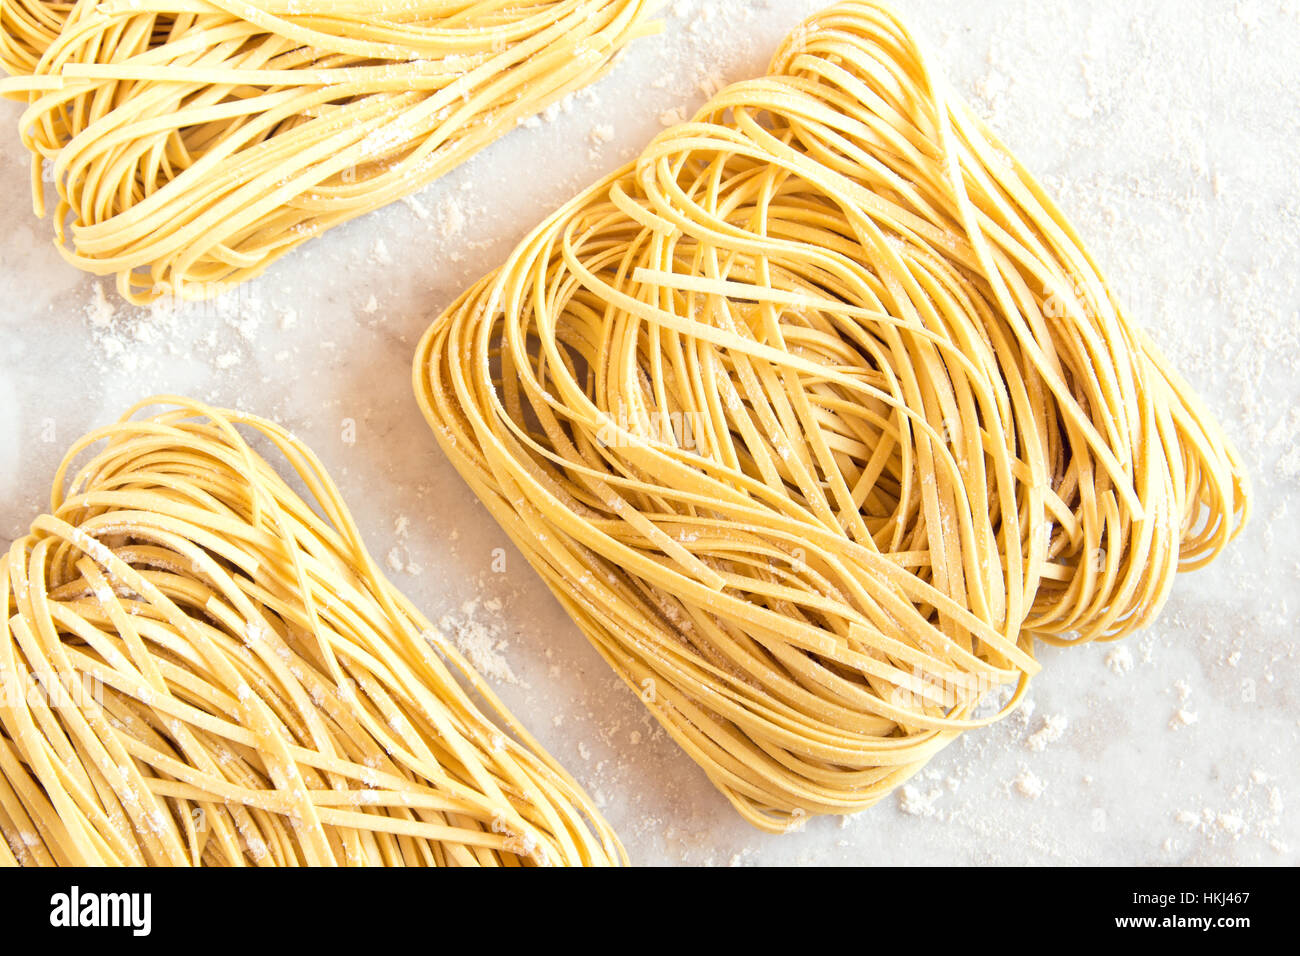 Homemade Raw Egg Noodles on a white background close up - Stock Image